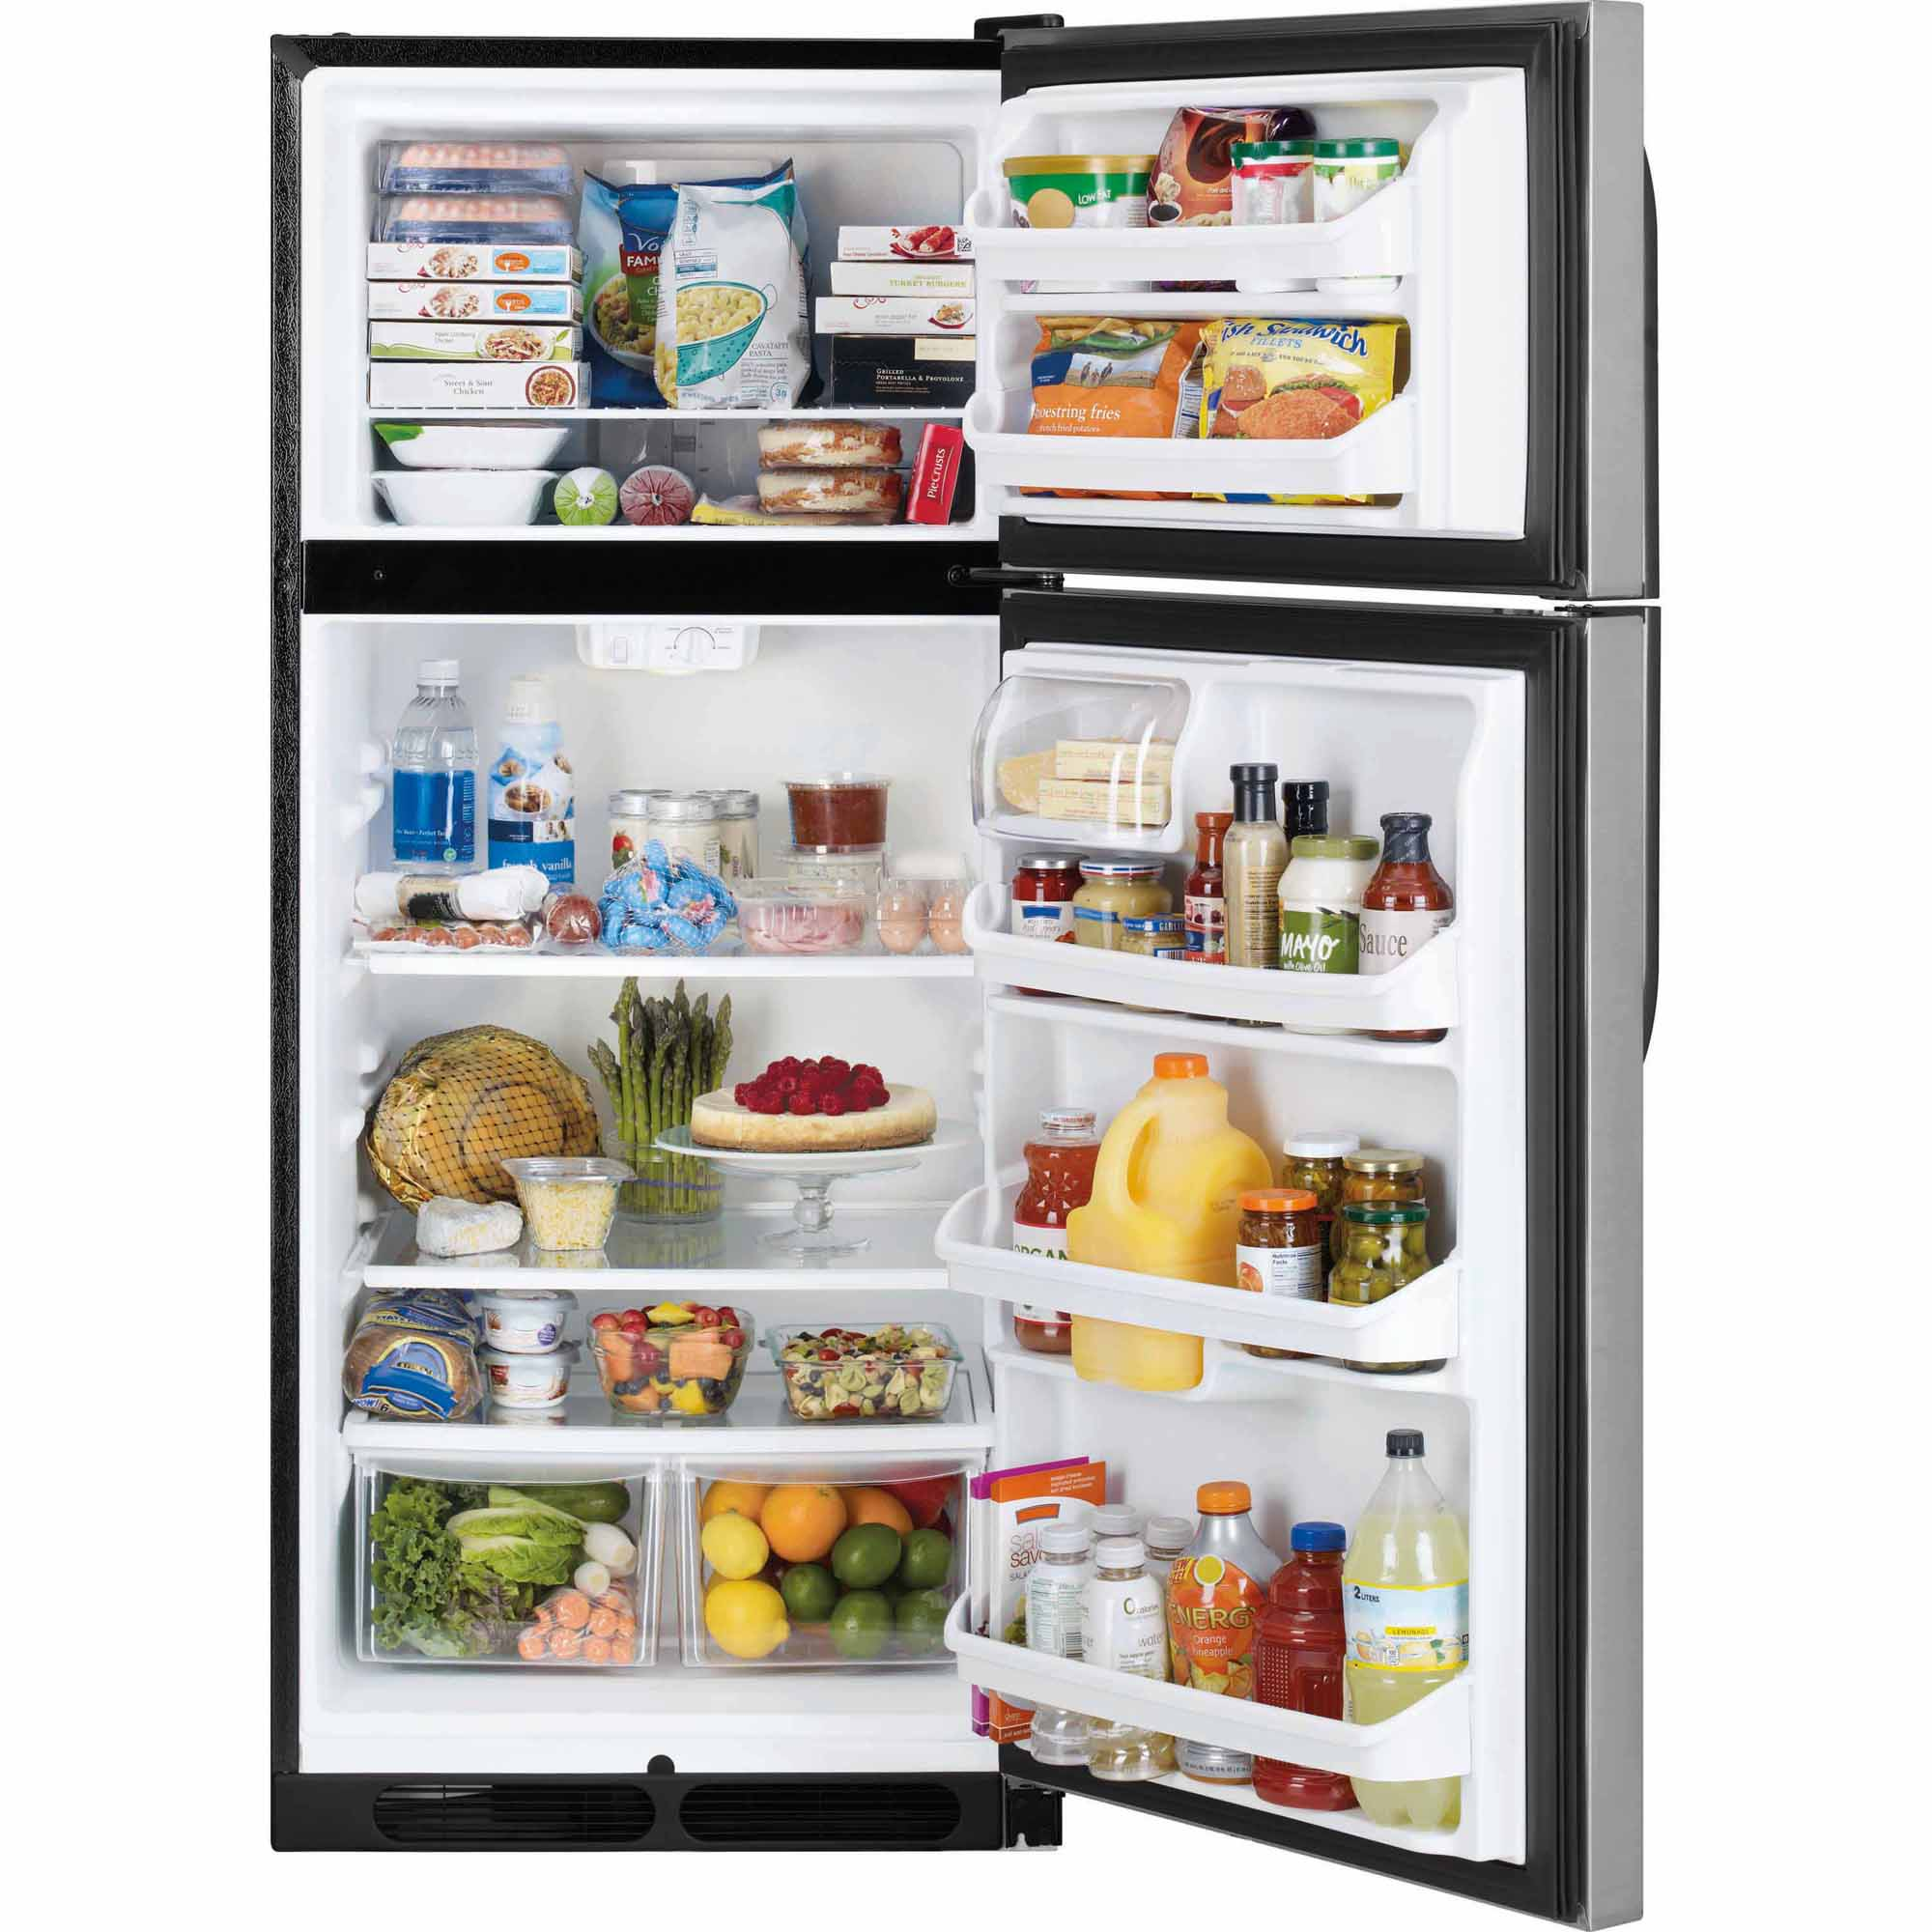 Kenmore 16 cu. ft. Top Mount Refrigerator - Stainless 60383